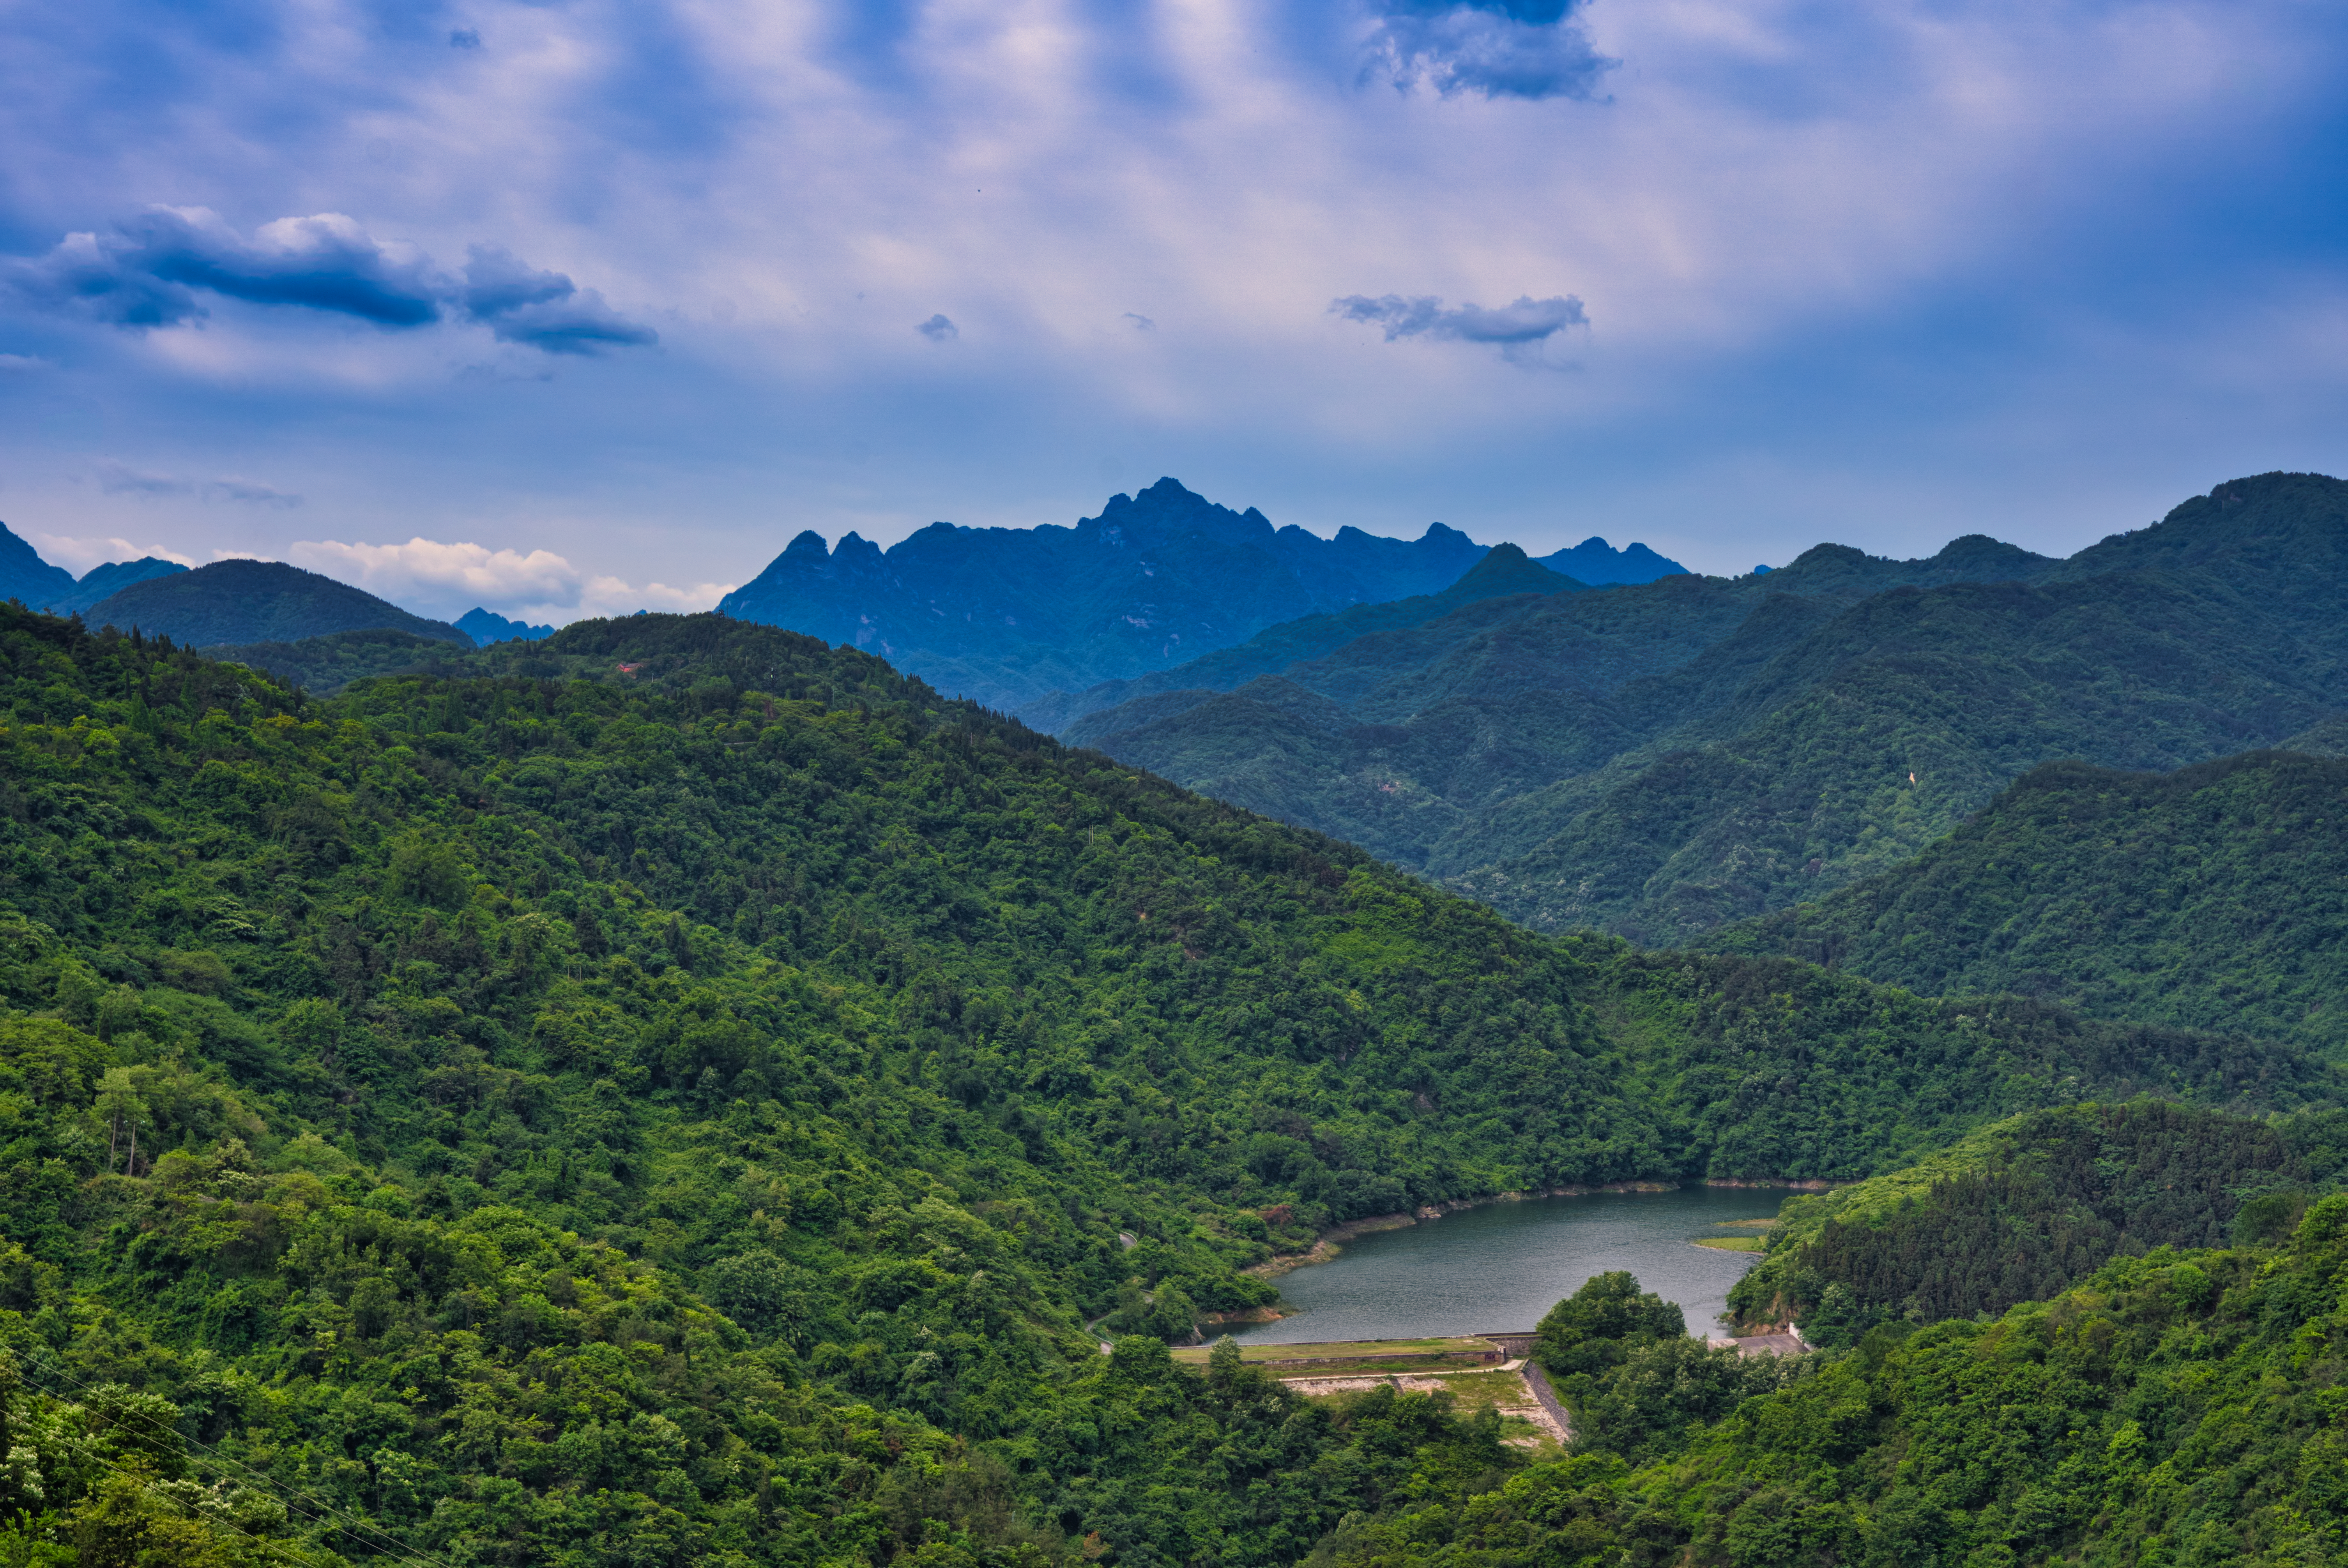 The Amazing Wudang Mountains